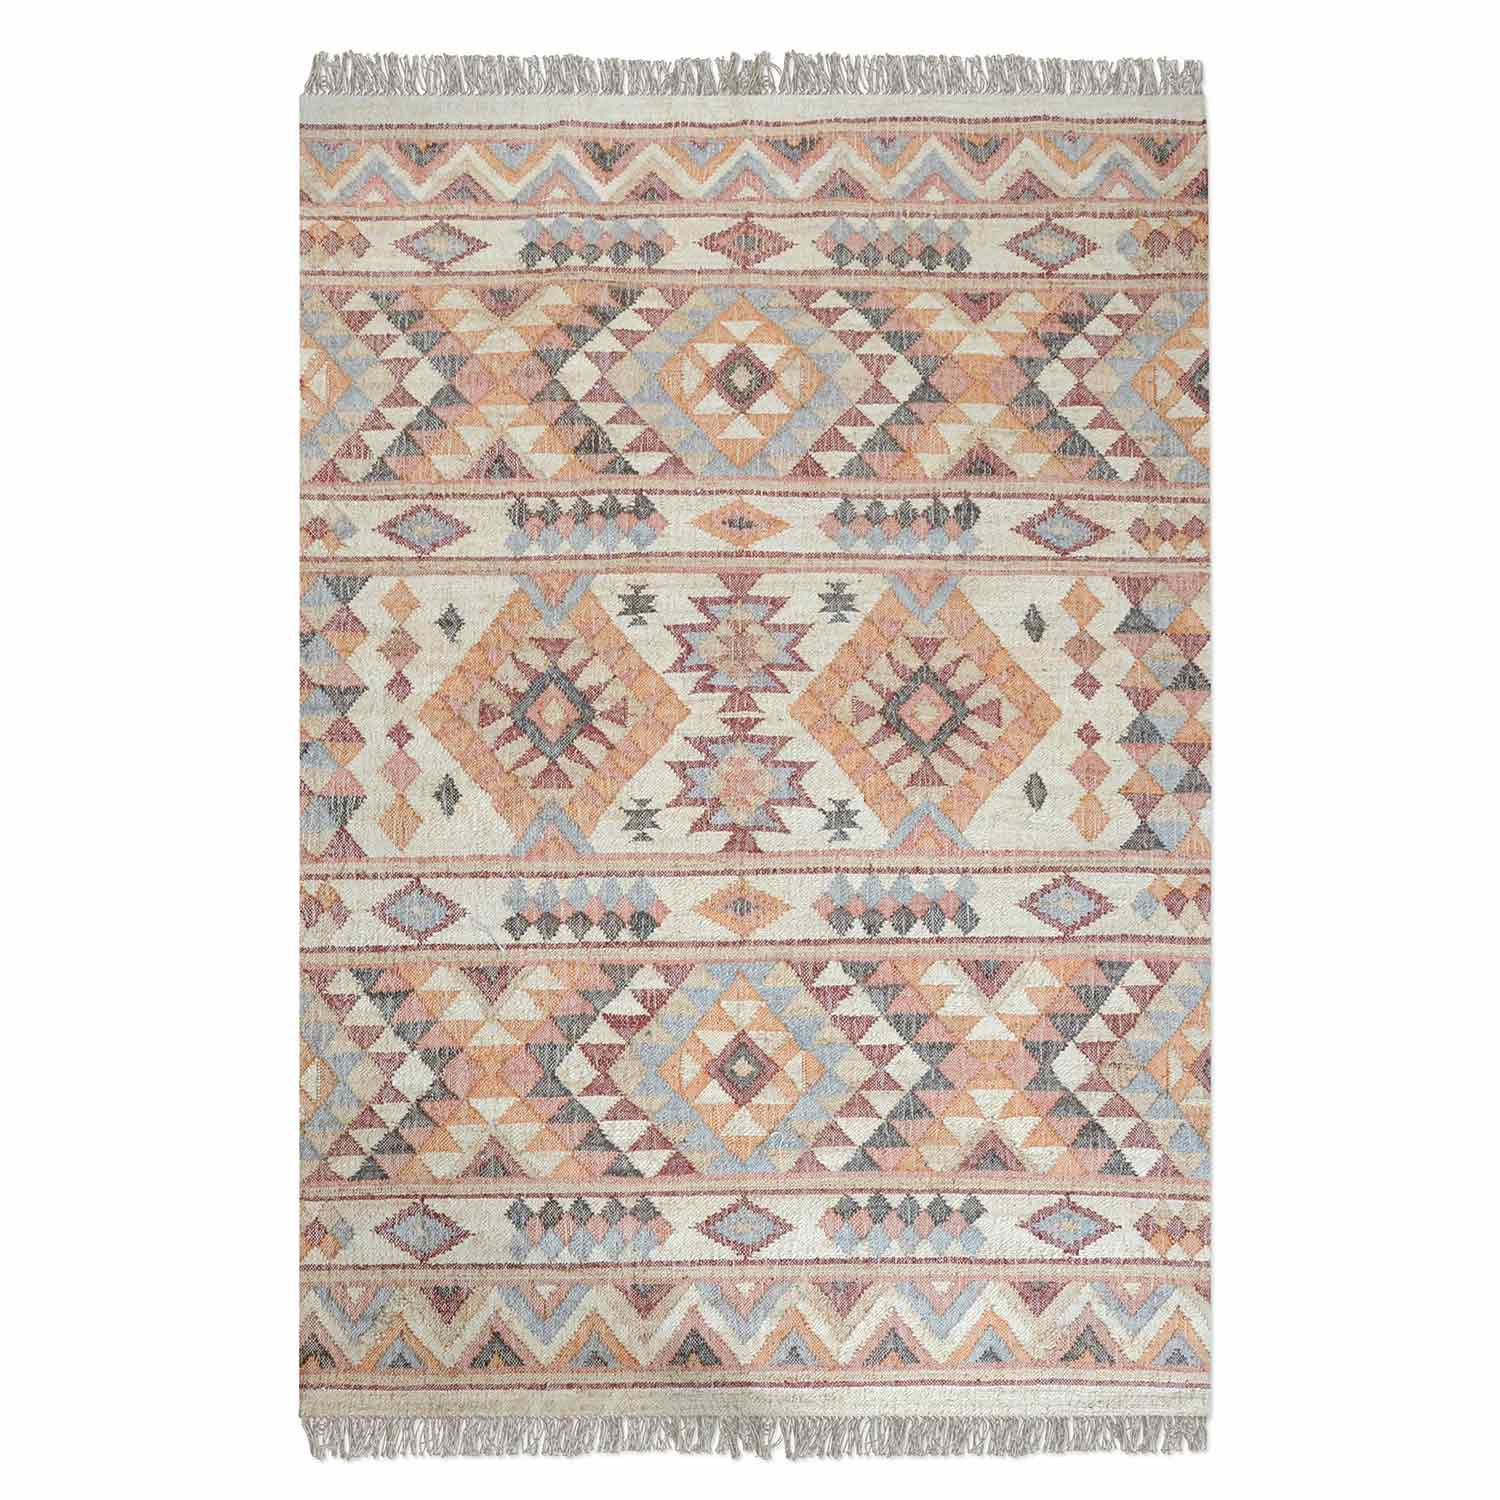 Uttermost Chaparral 9 x 12 Rug - Rust Orange